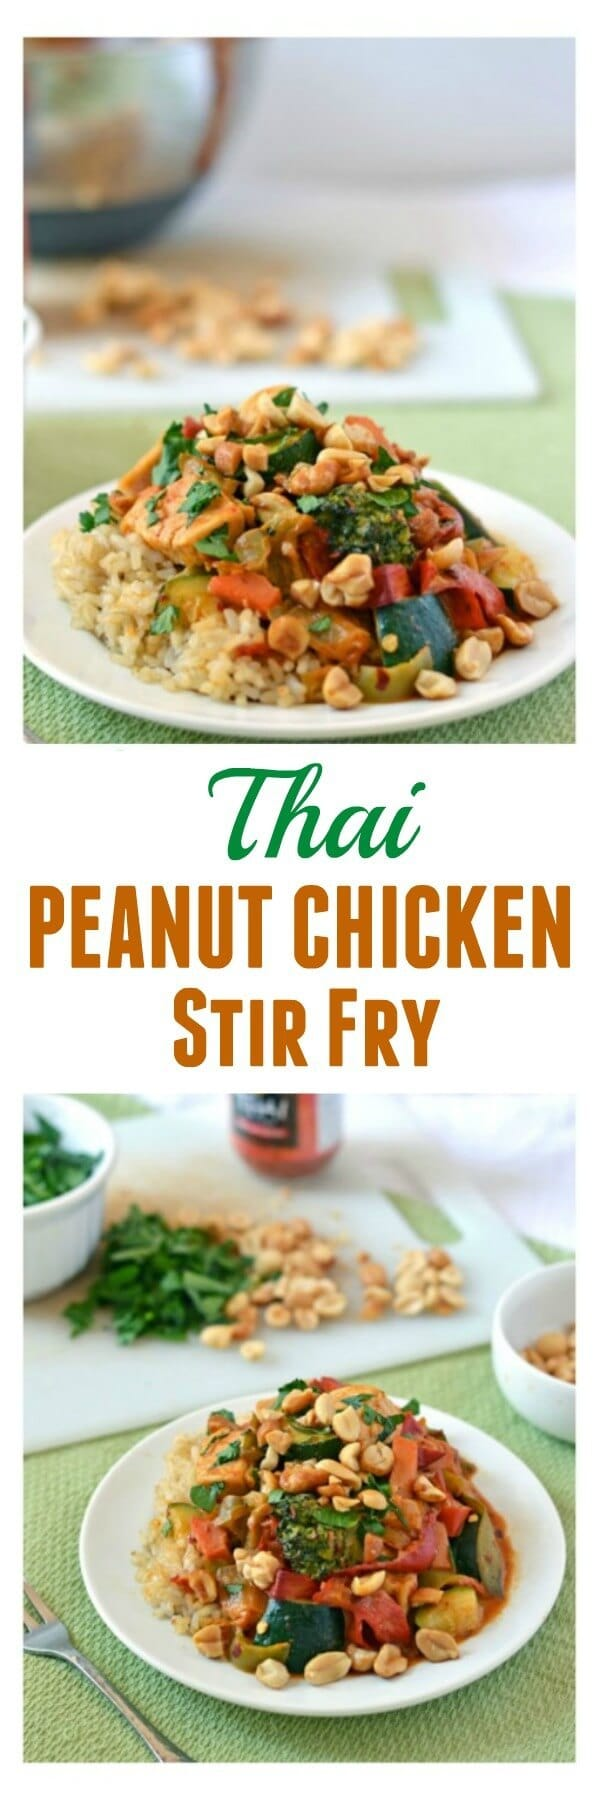 Chicken Stir Fry with Thai Peanut Sauce. A quick and easy dinner that's packed with flavor!